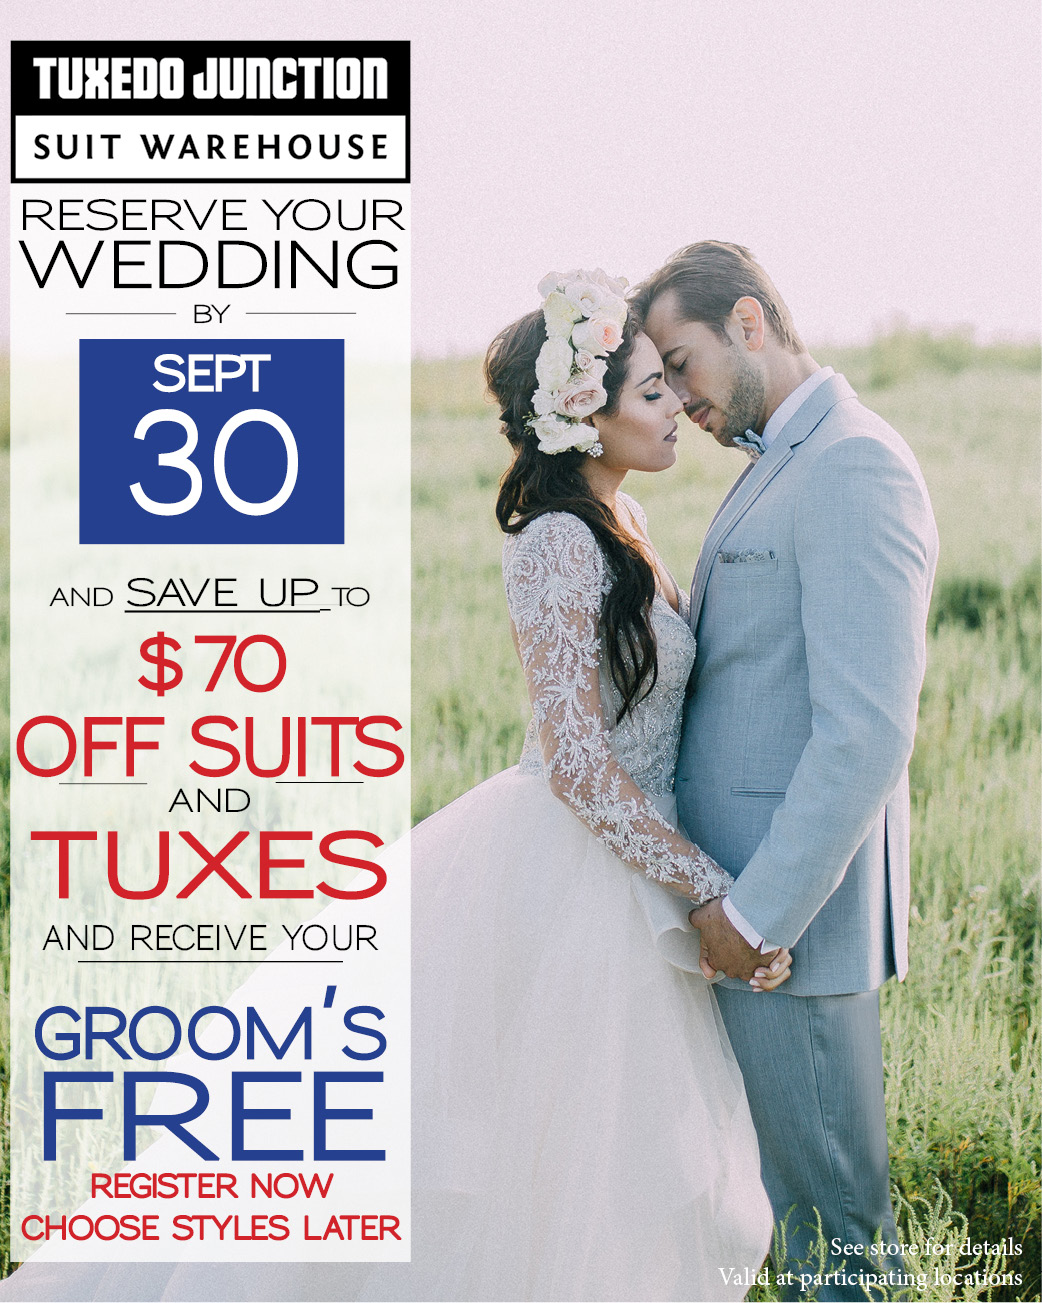 Reserve your wedding by July and get $70 off suits and tuxes